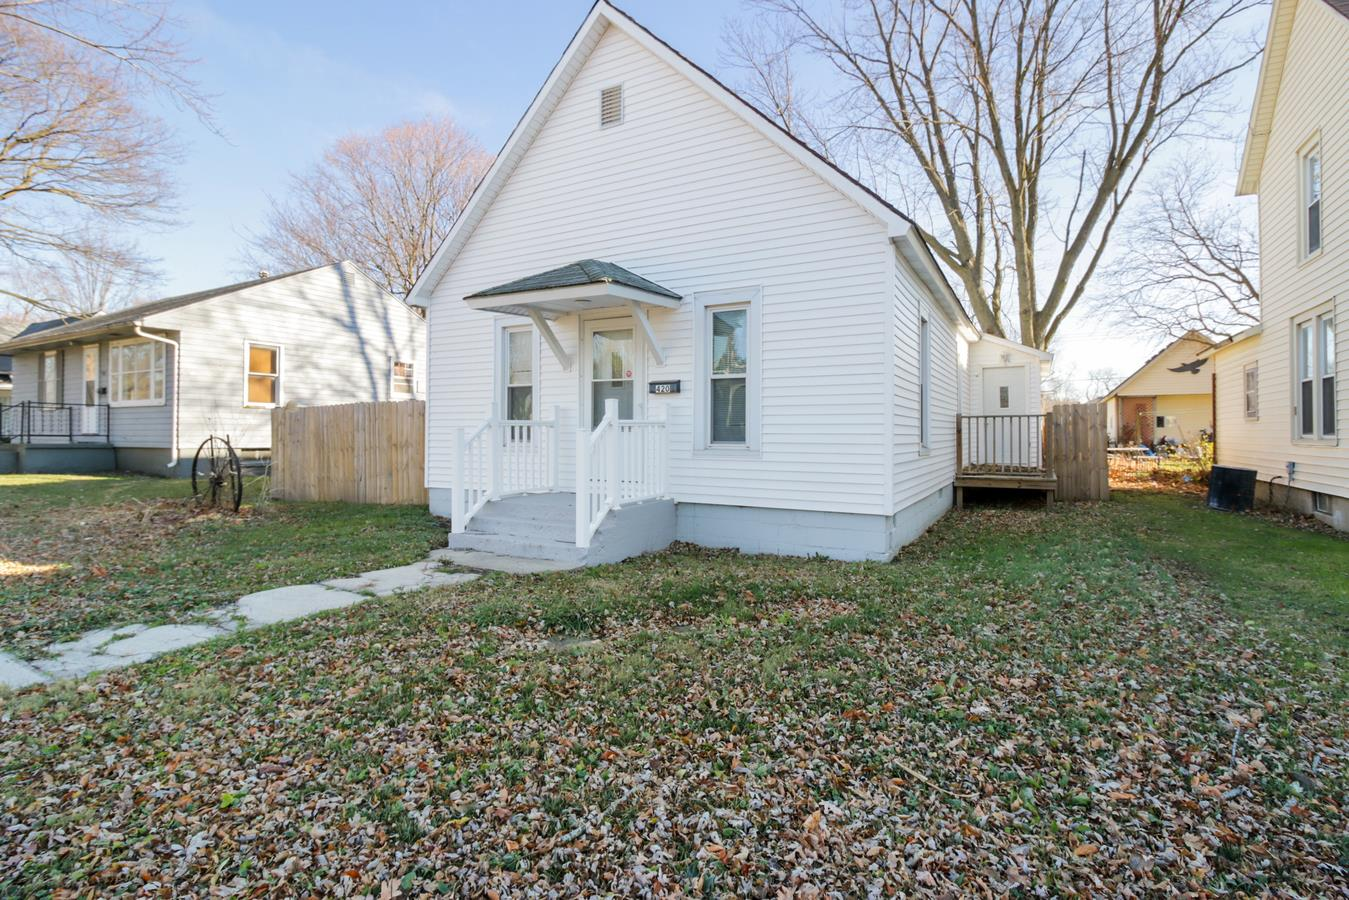 420 S State Street, Gibson City, IL 60936 - #: 10901901